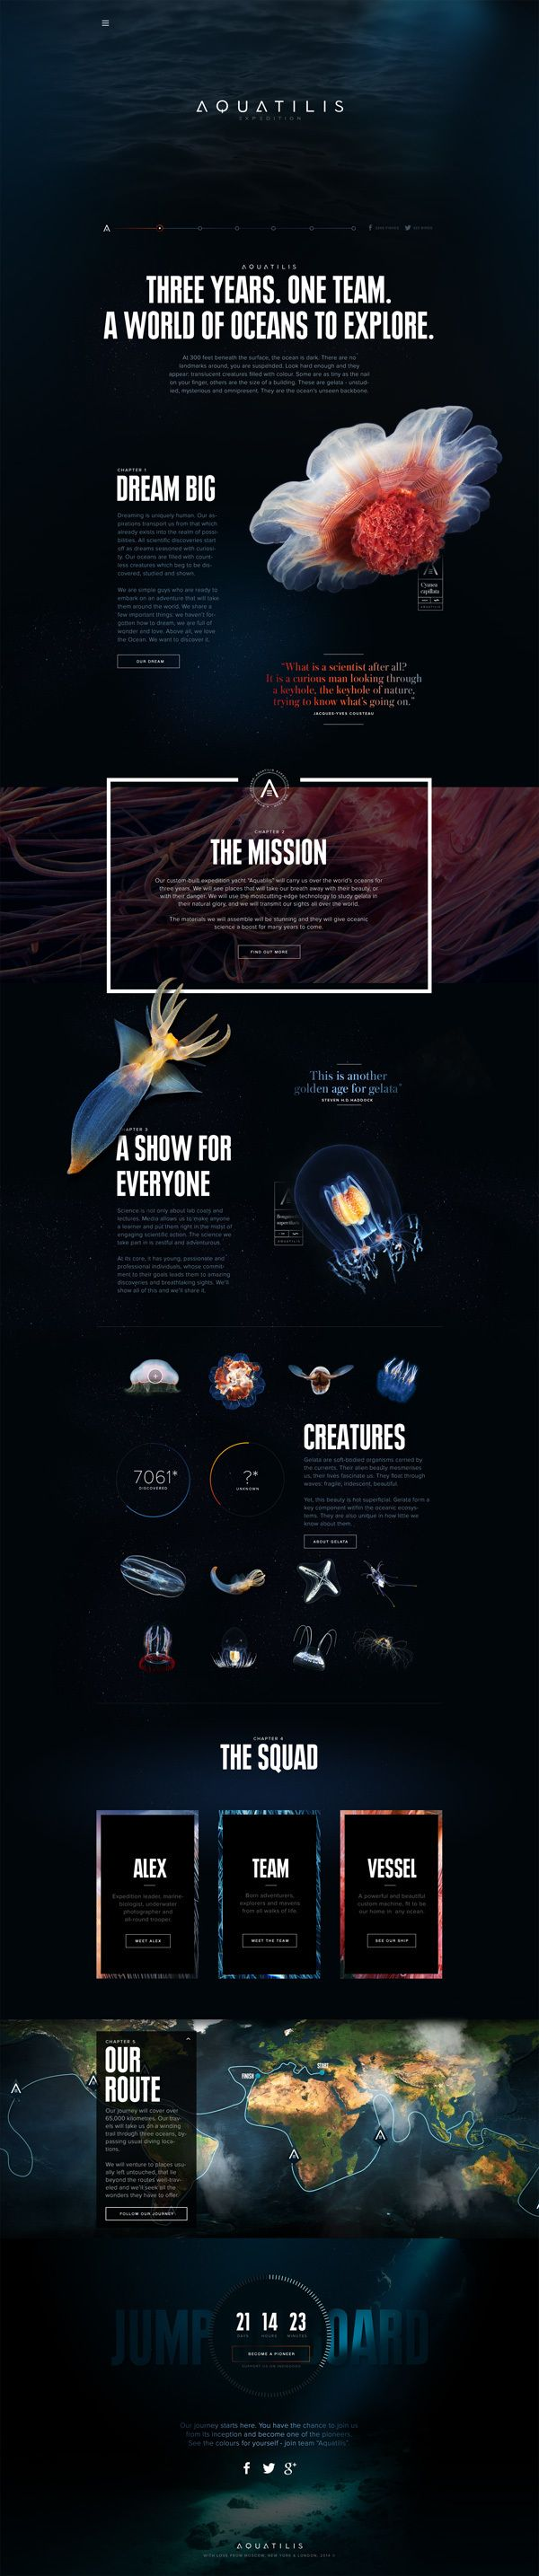 Aquatilis Expedition by Tobias van Schneider, via Behance | #webdesign #it #web #design #layout #userinterface #website #webdesign < repinned by www.BlickeDeeler.de | Visit our website www.blickedeeler.de/leistungen/webdesign